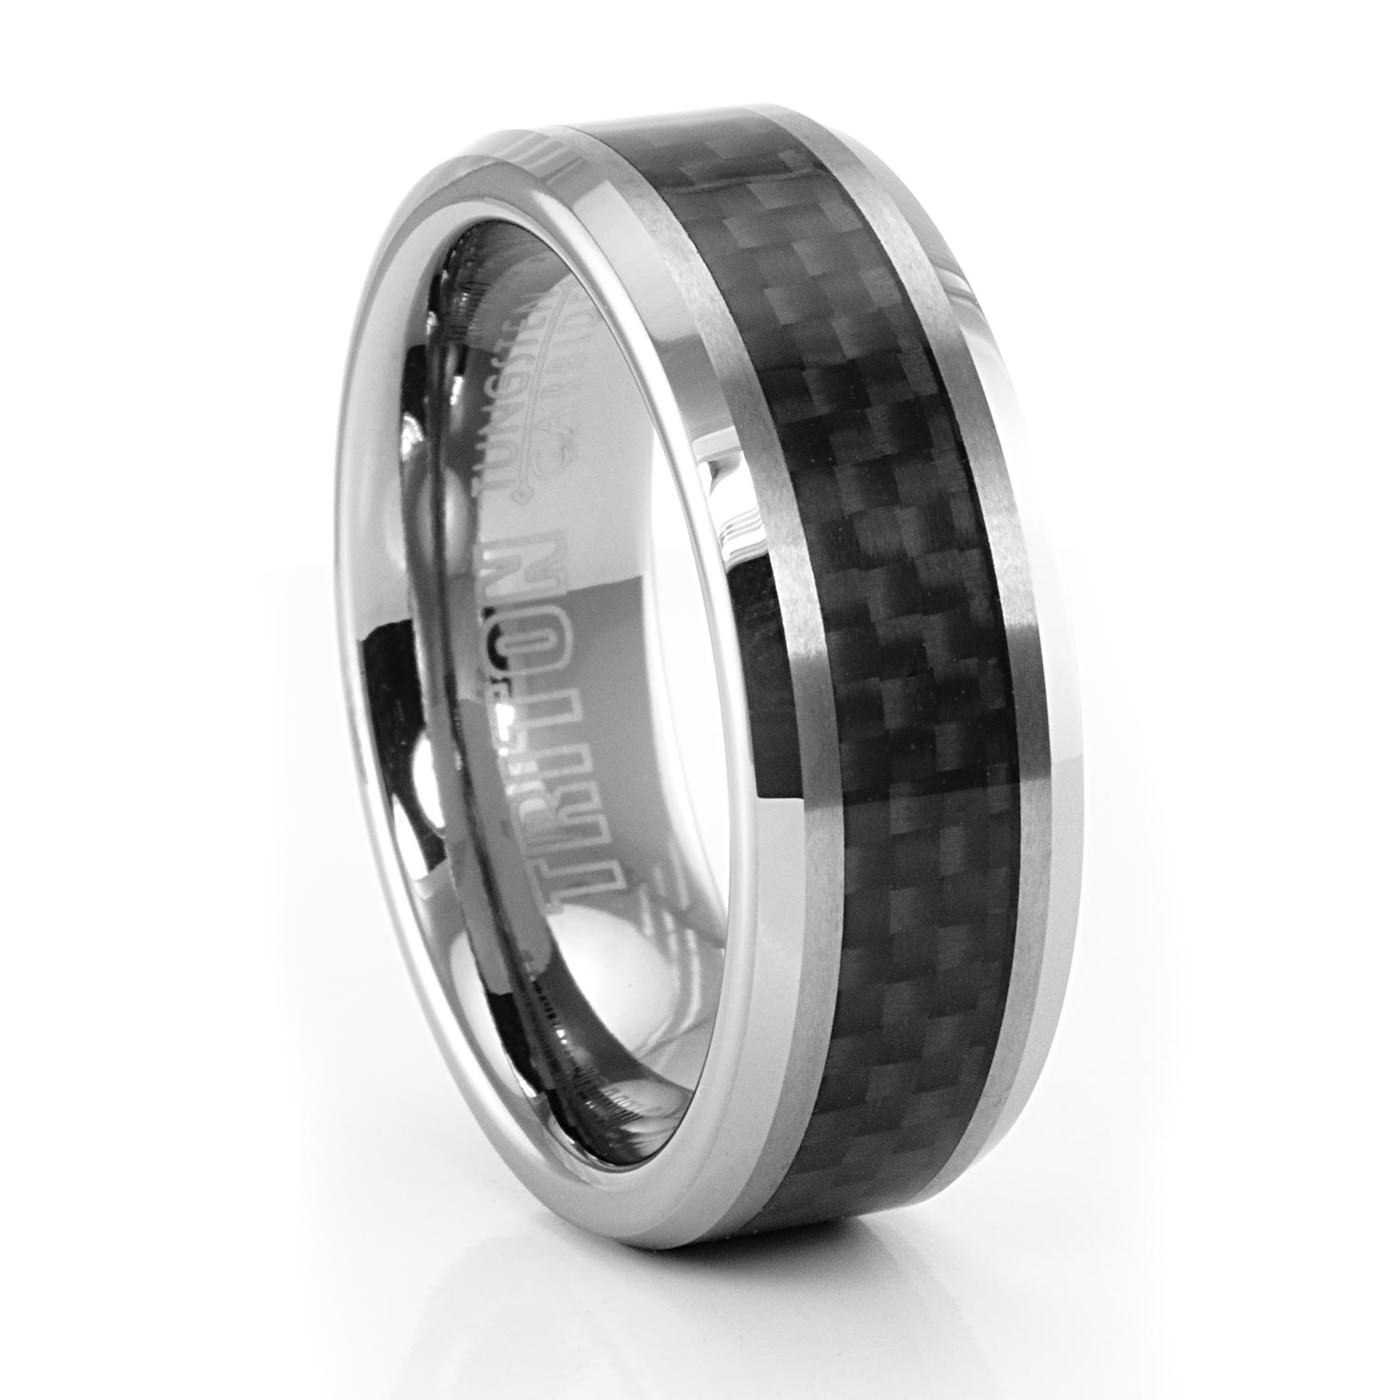 band jaredstore him mv to hover zm black titanium rings jar en triton for wedding zoom jared